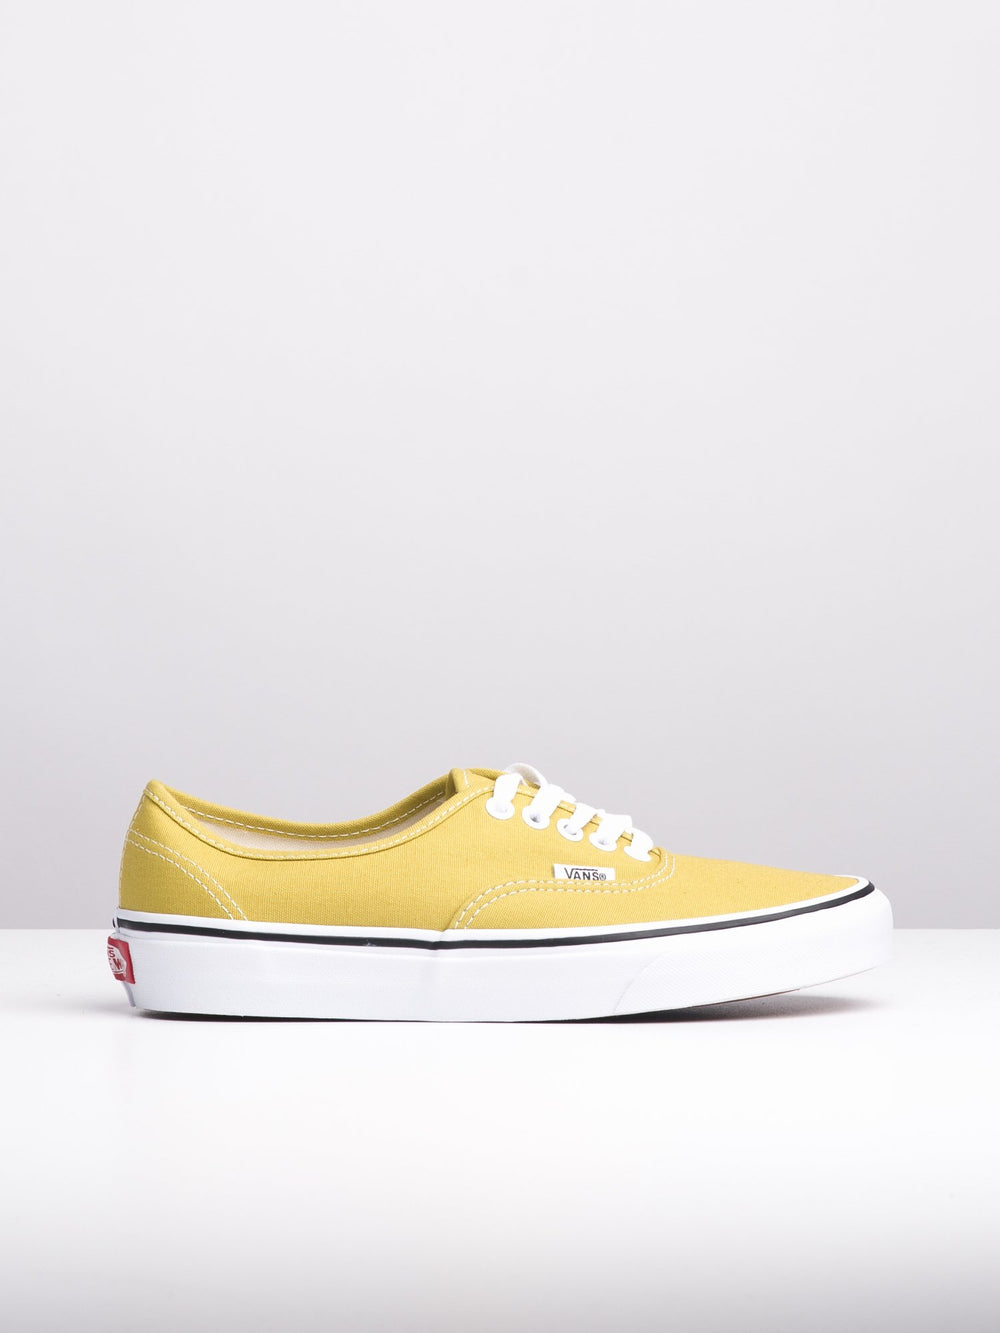 WOMENS AUTHENTIC LO - CRESS GREEN